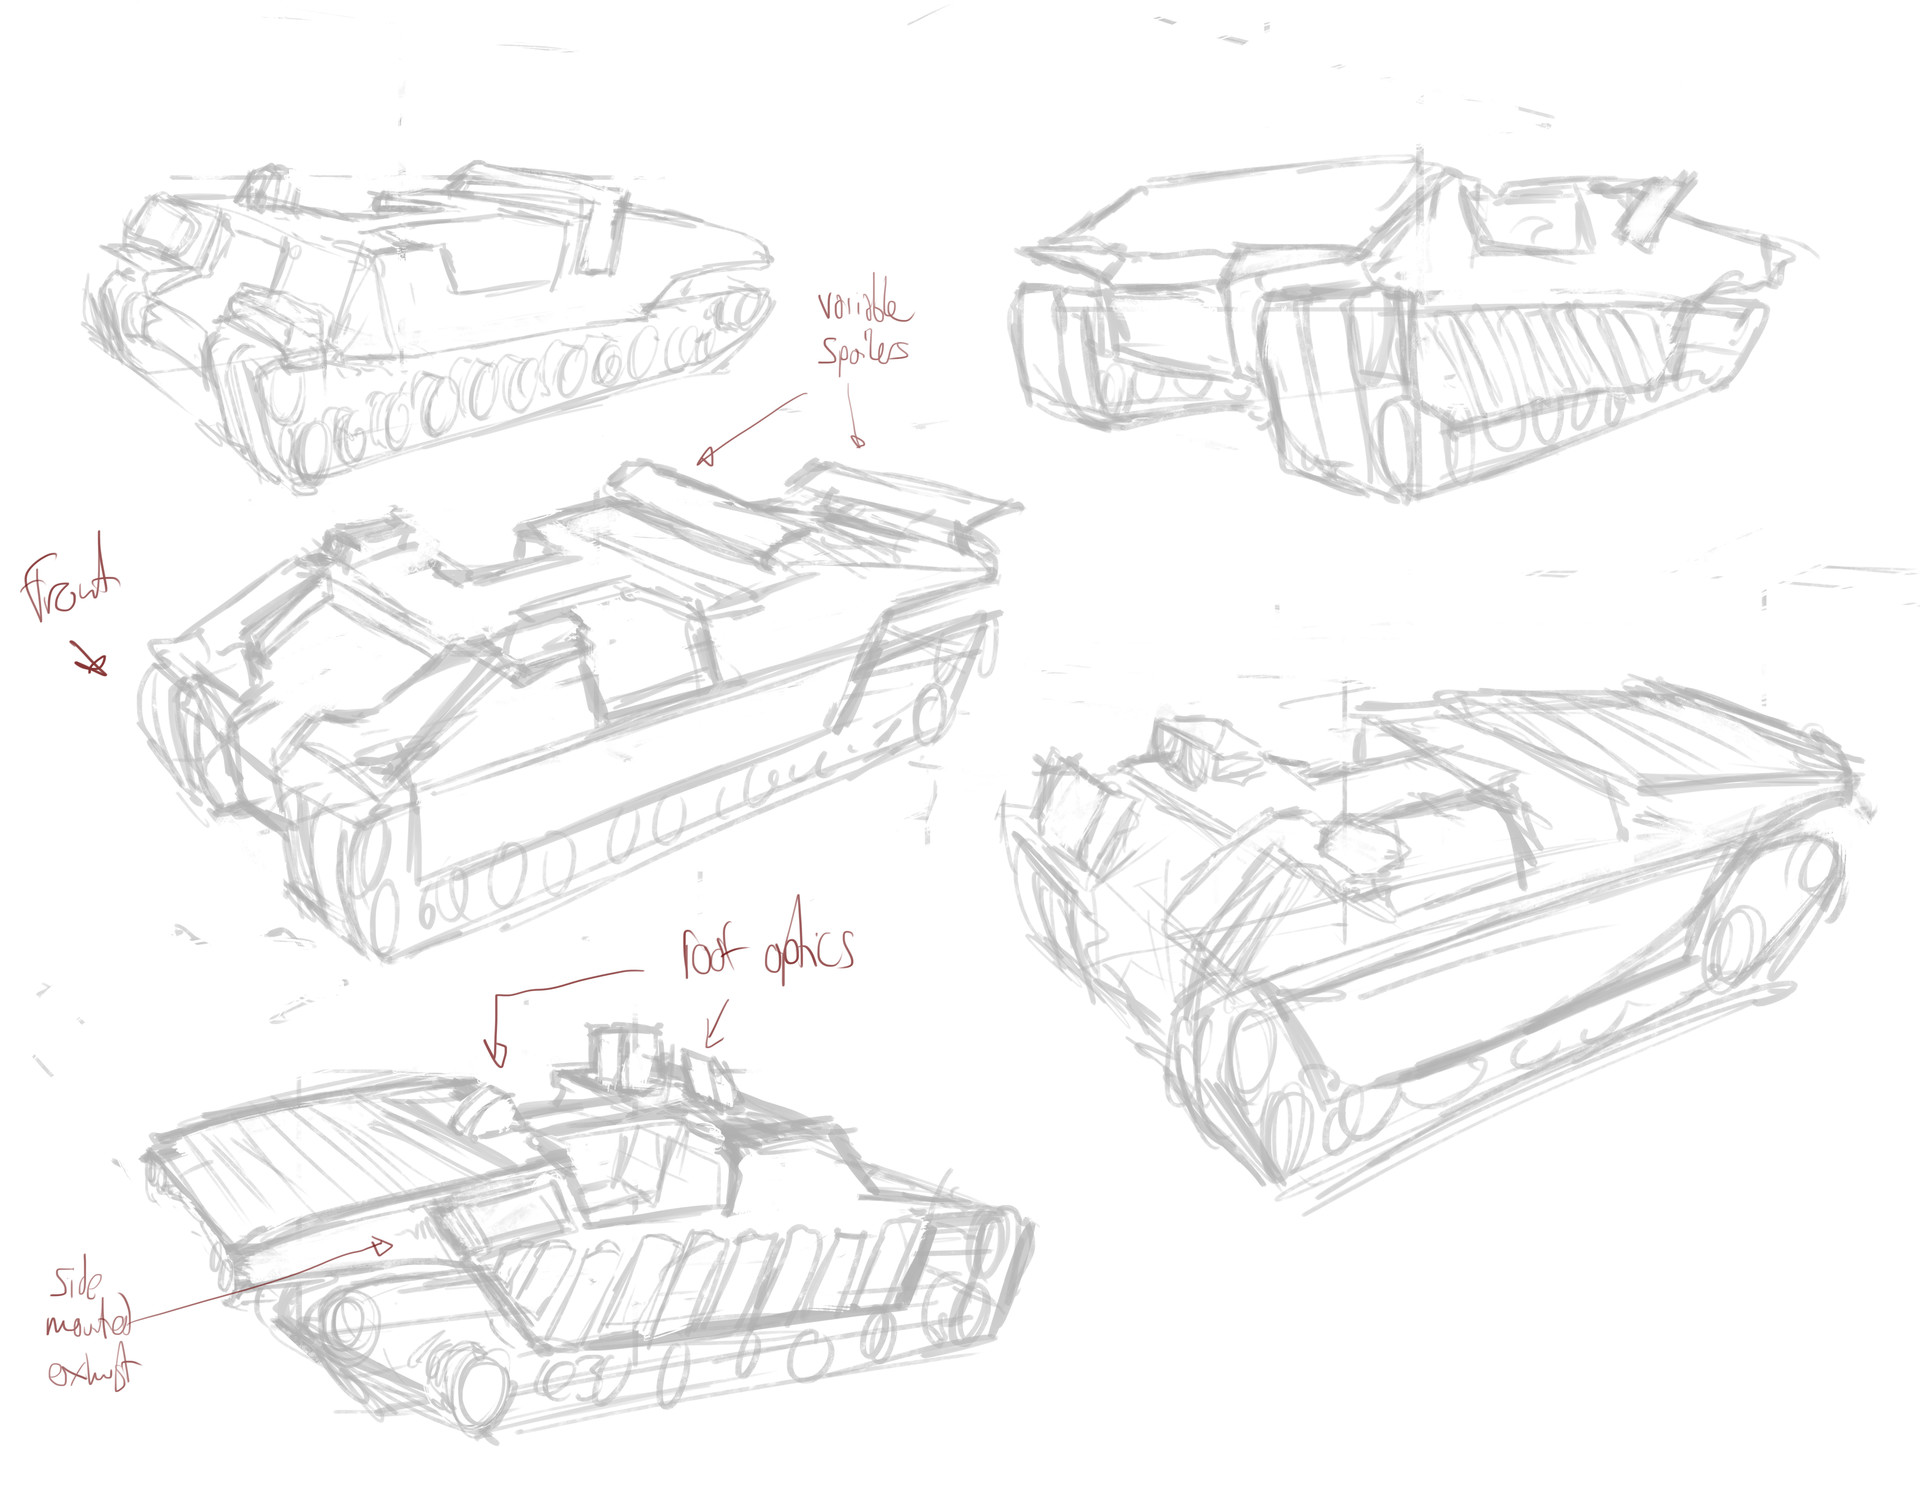 Rob walters t01 sketches